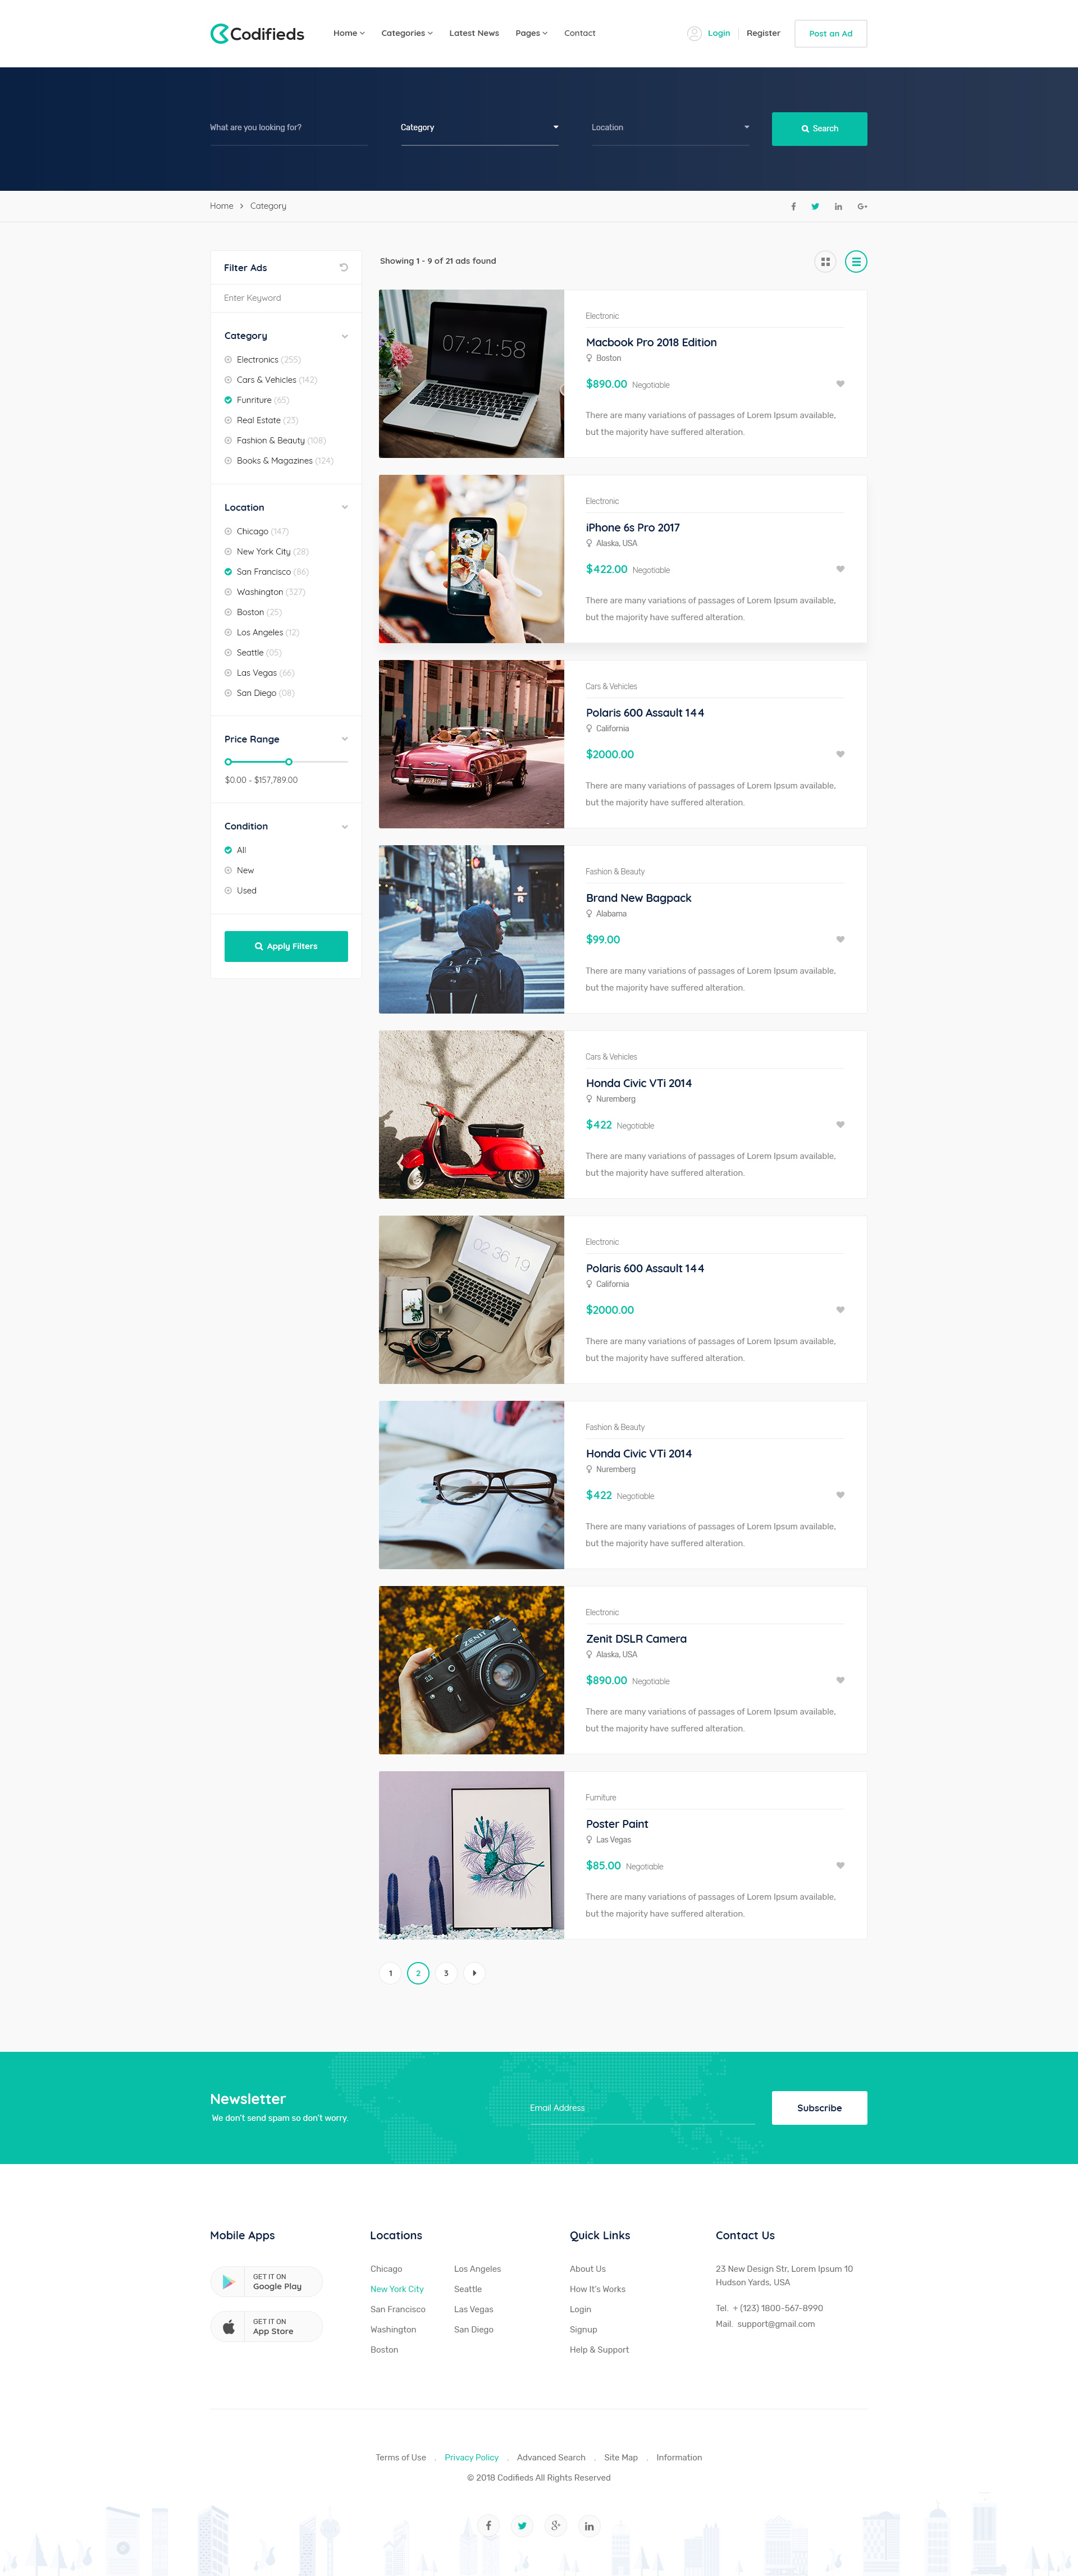 Codifieds - Classified Ads PSD Template